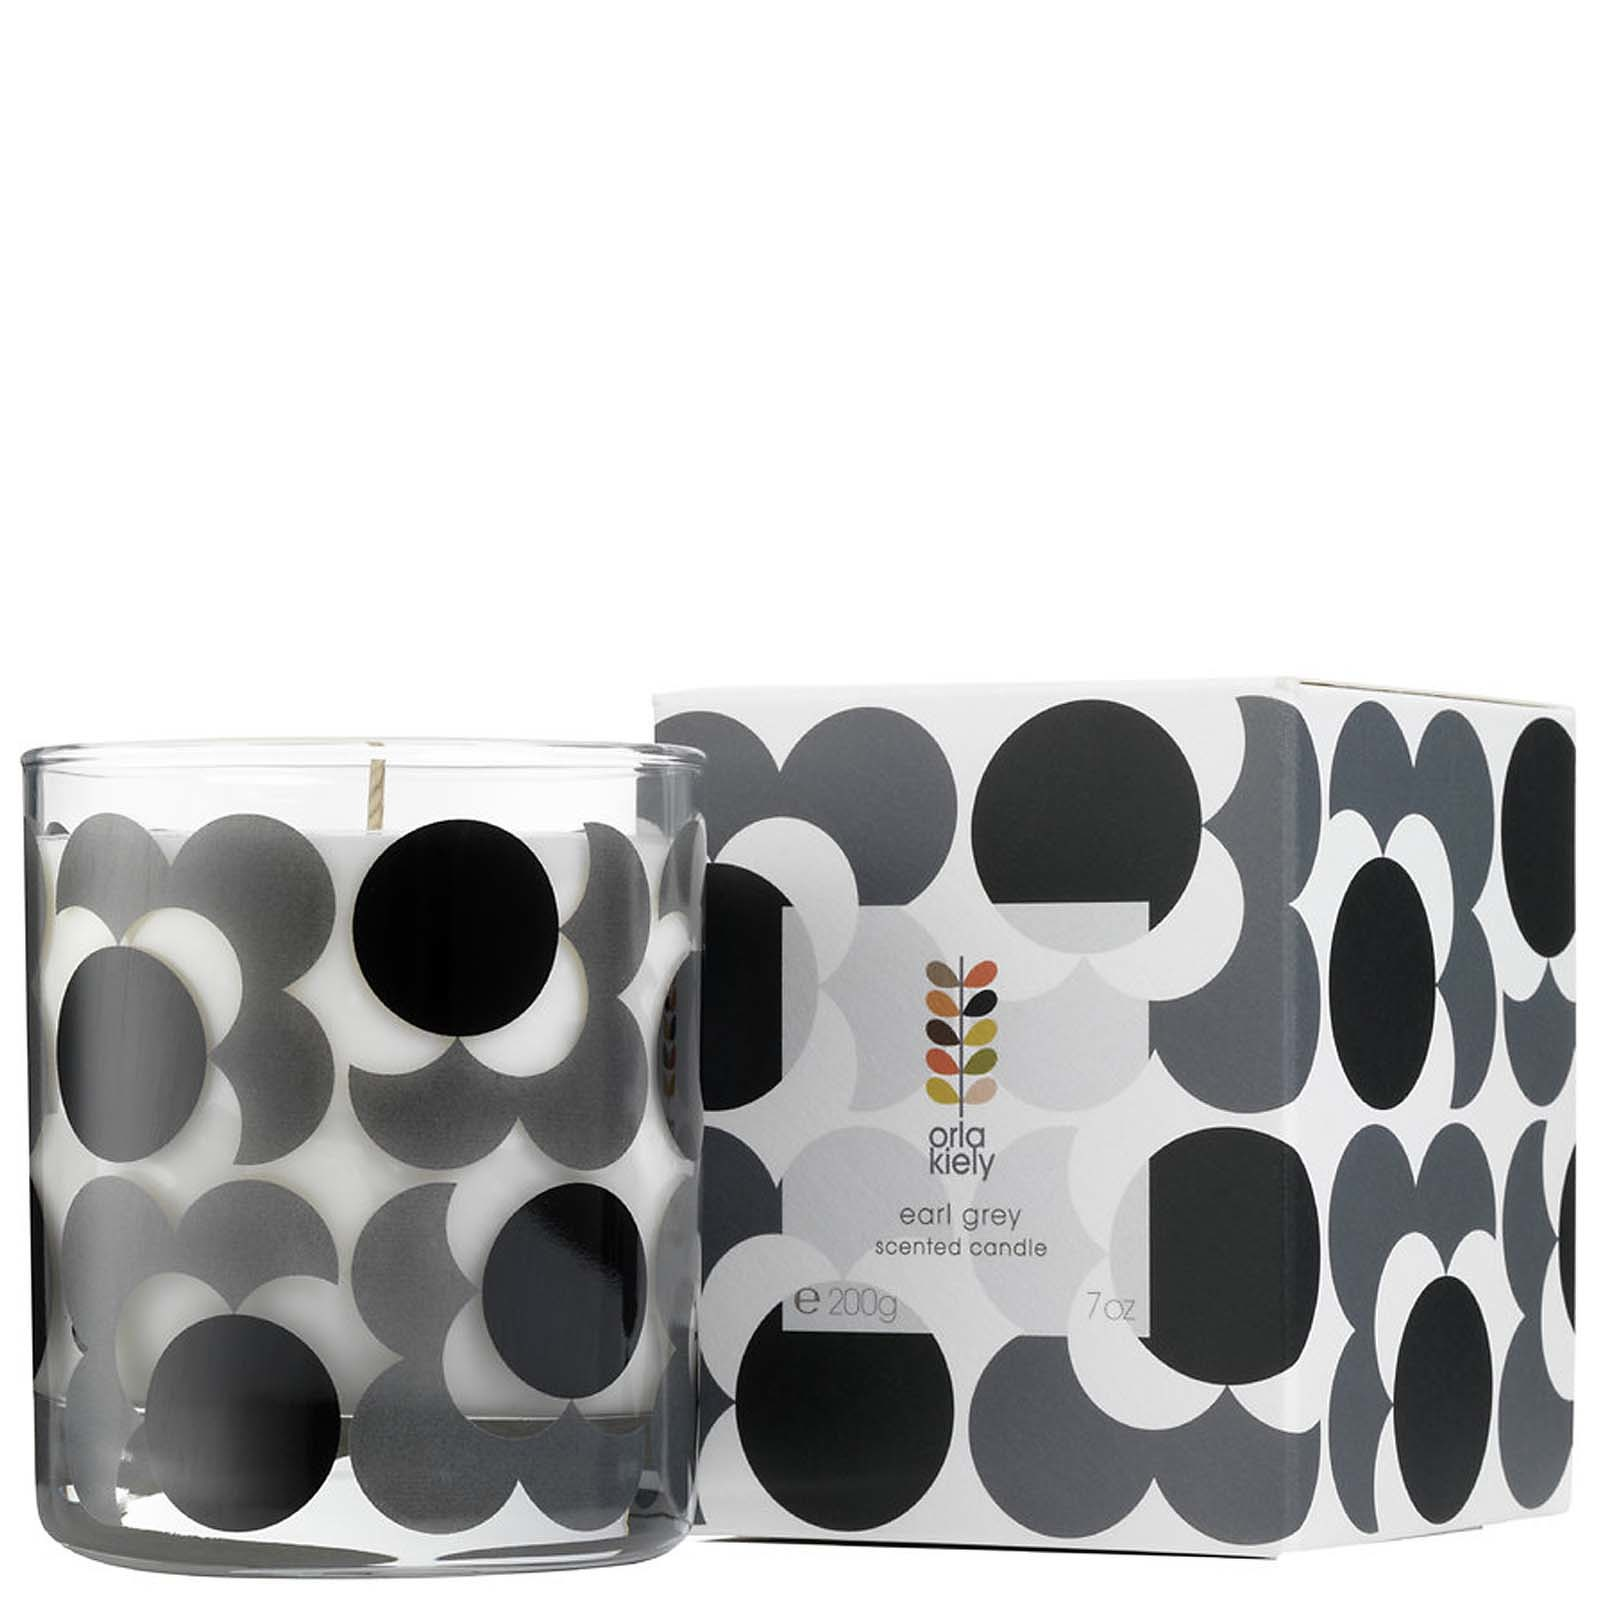 Orla Kiely Home Earl Grey Candle 200g - Gifts & Sets